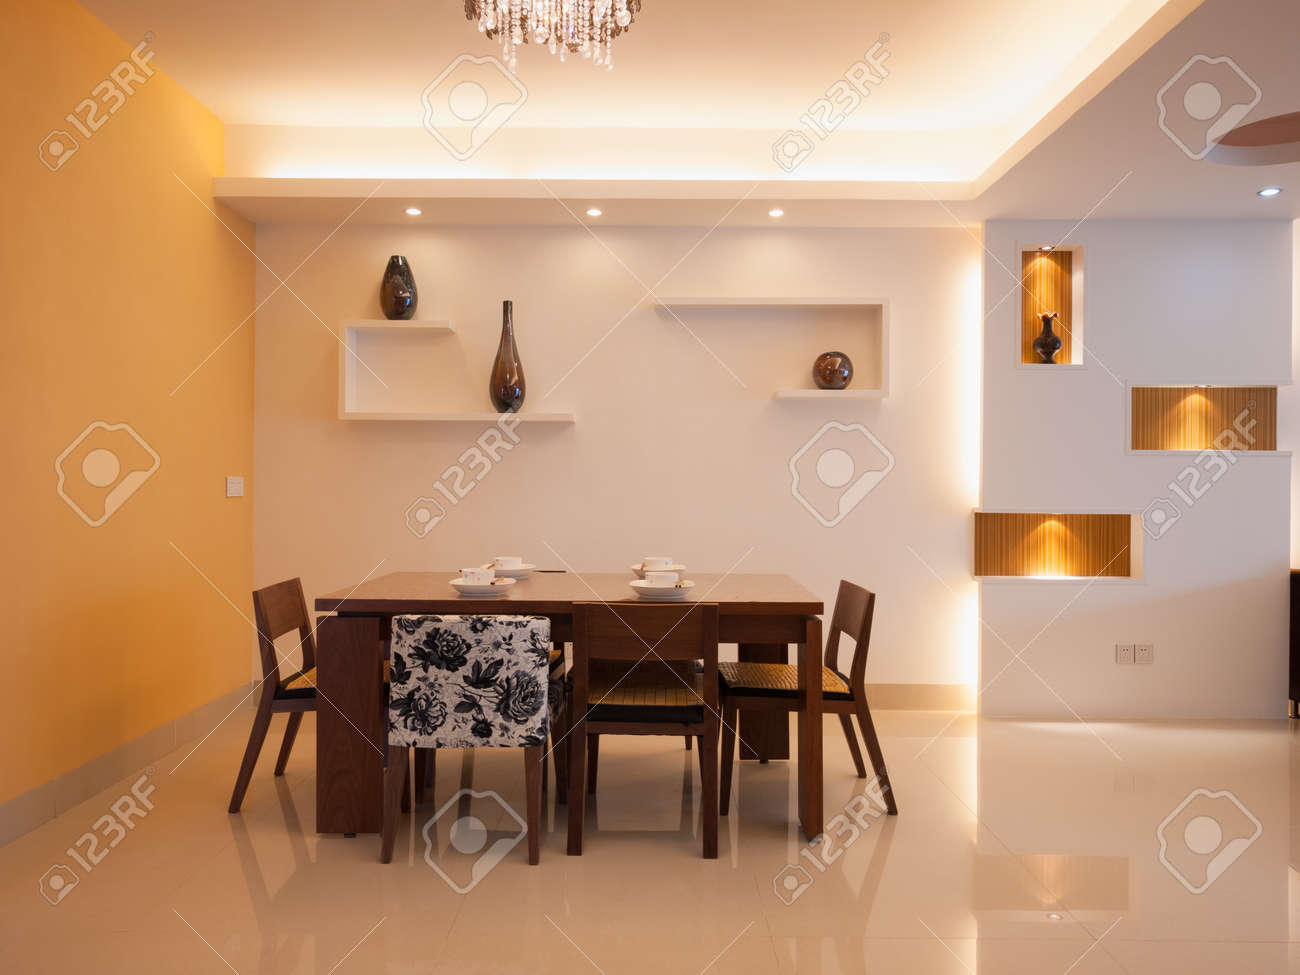 modern dining room with dining table and chairs Standard-Bild - 20054654